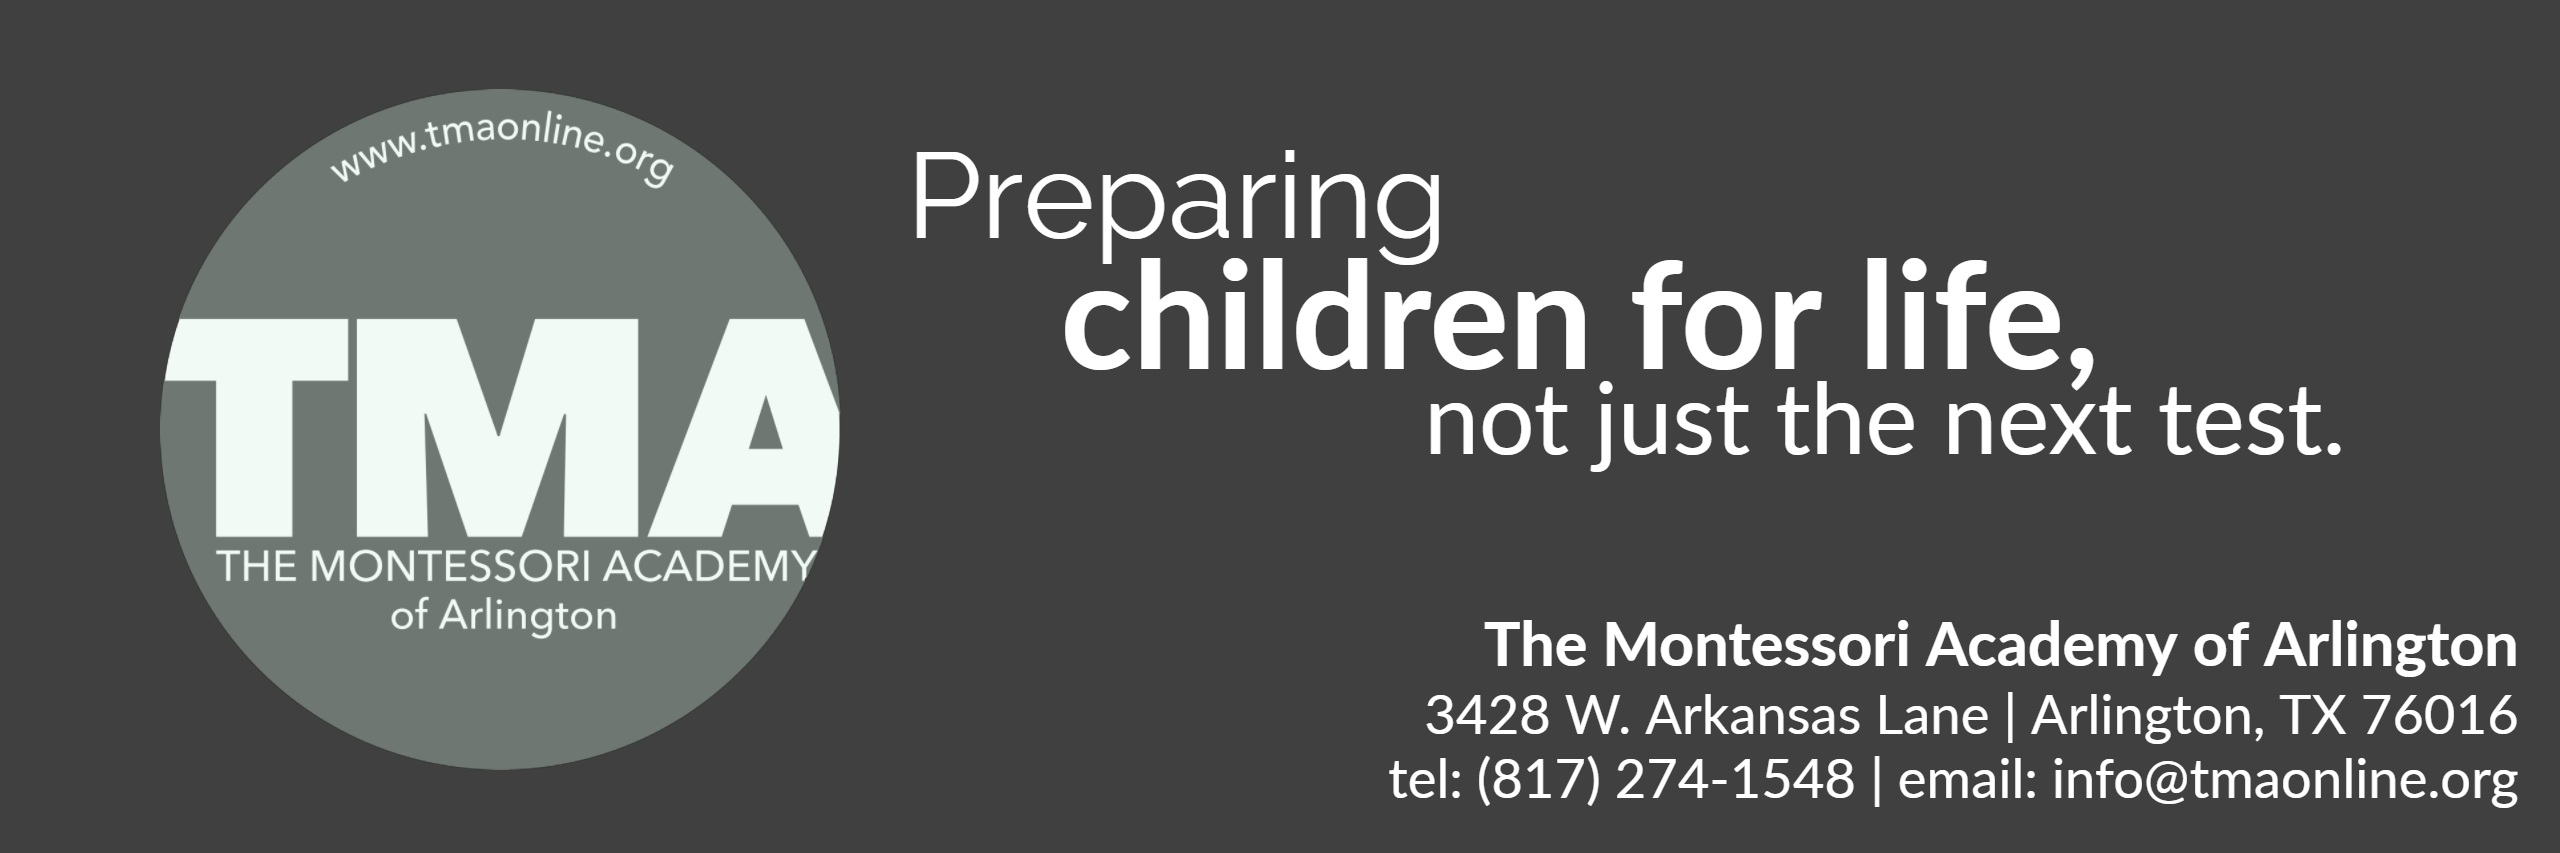 Preparing children for life, not just the next test.